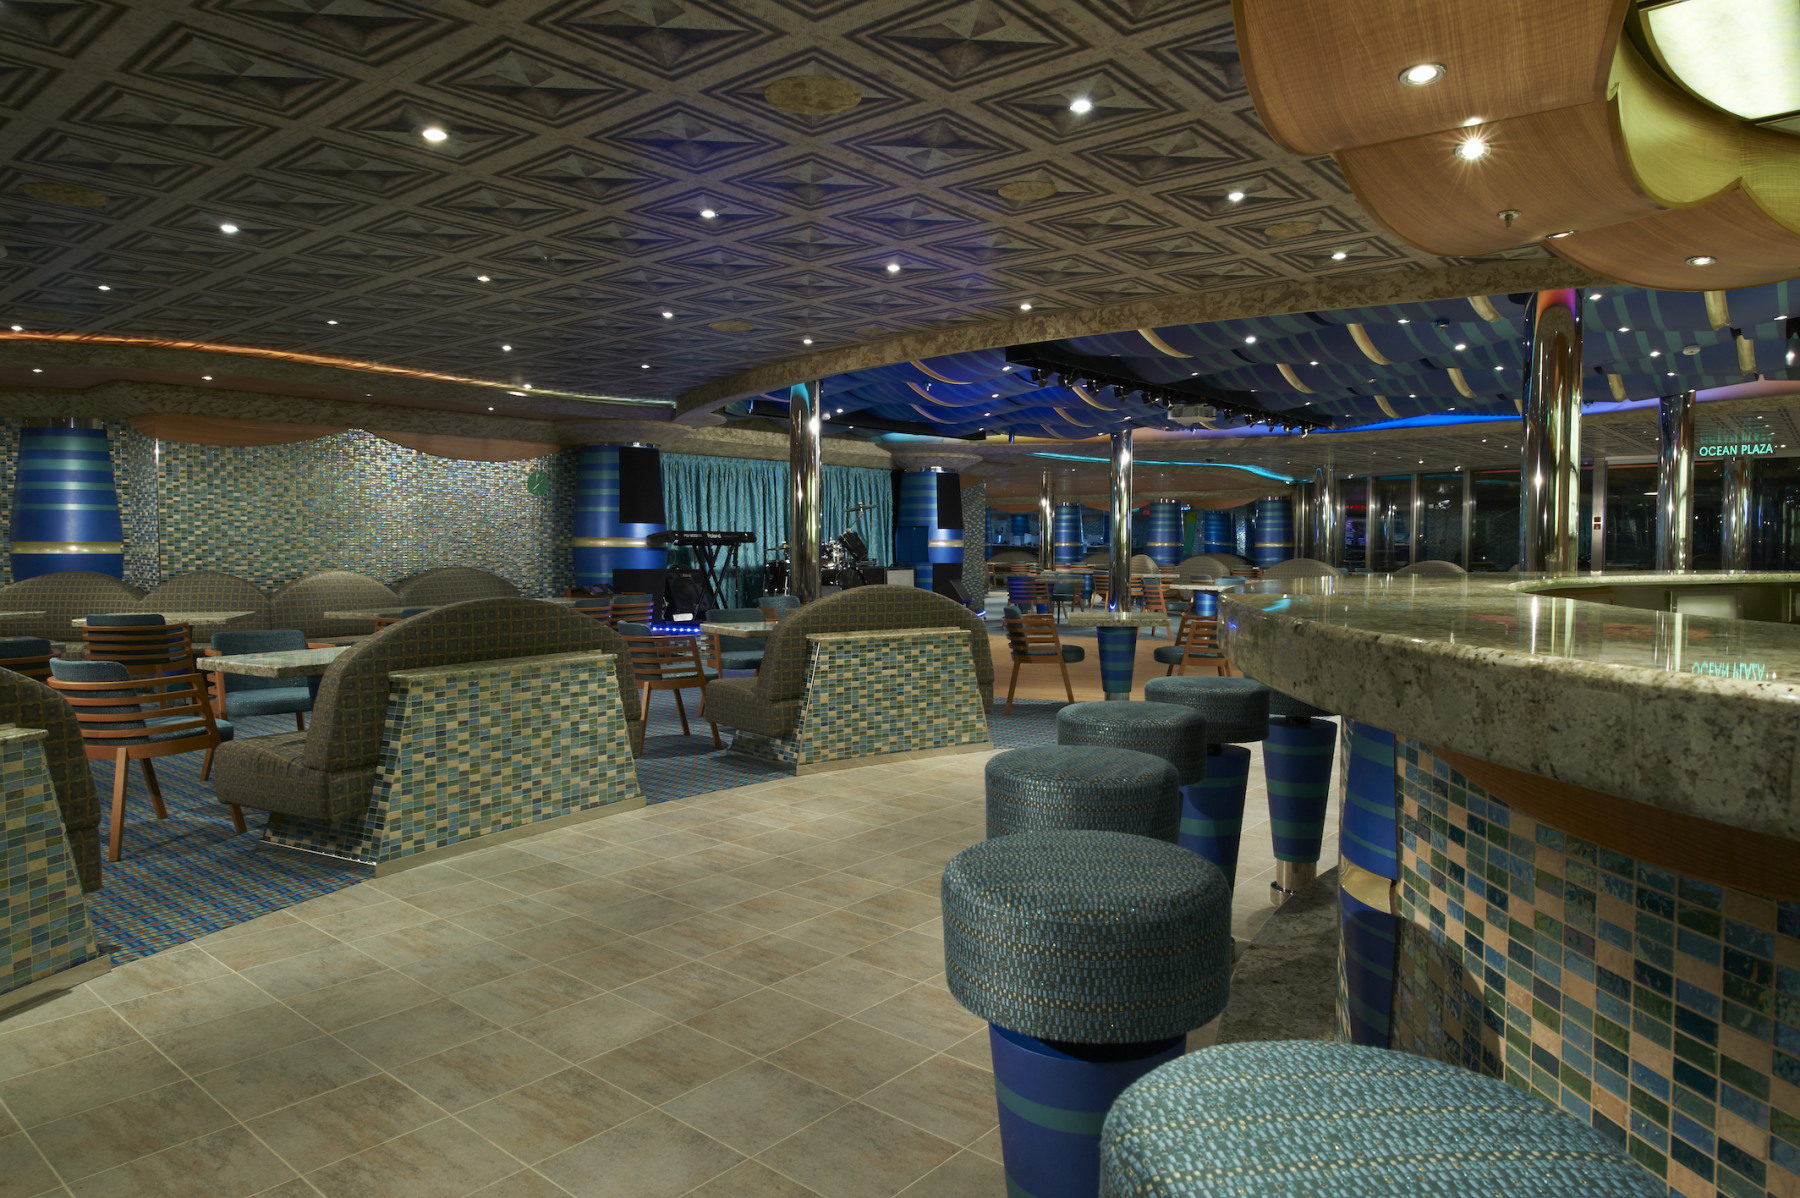 Carnival Magic Ocean Plaza 1.jpg